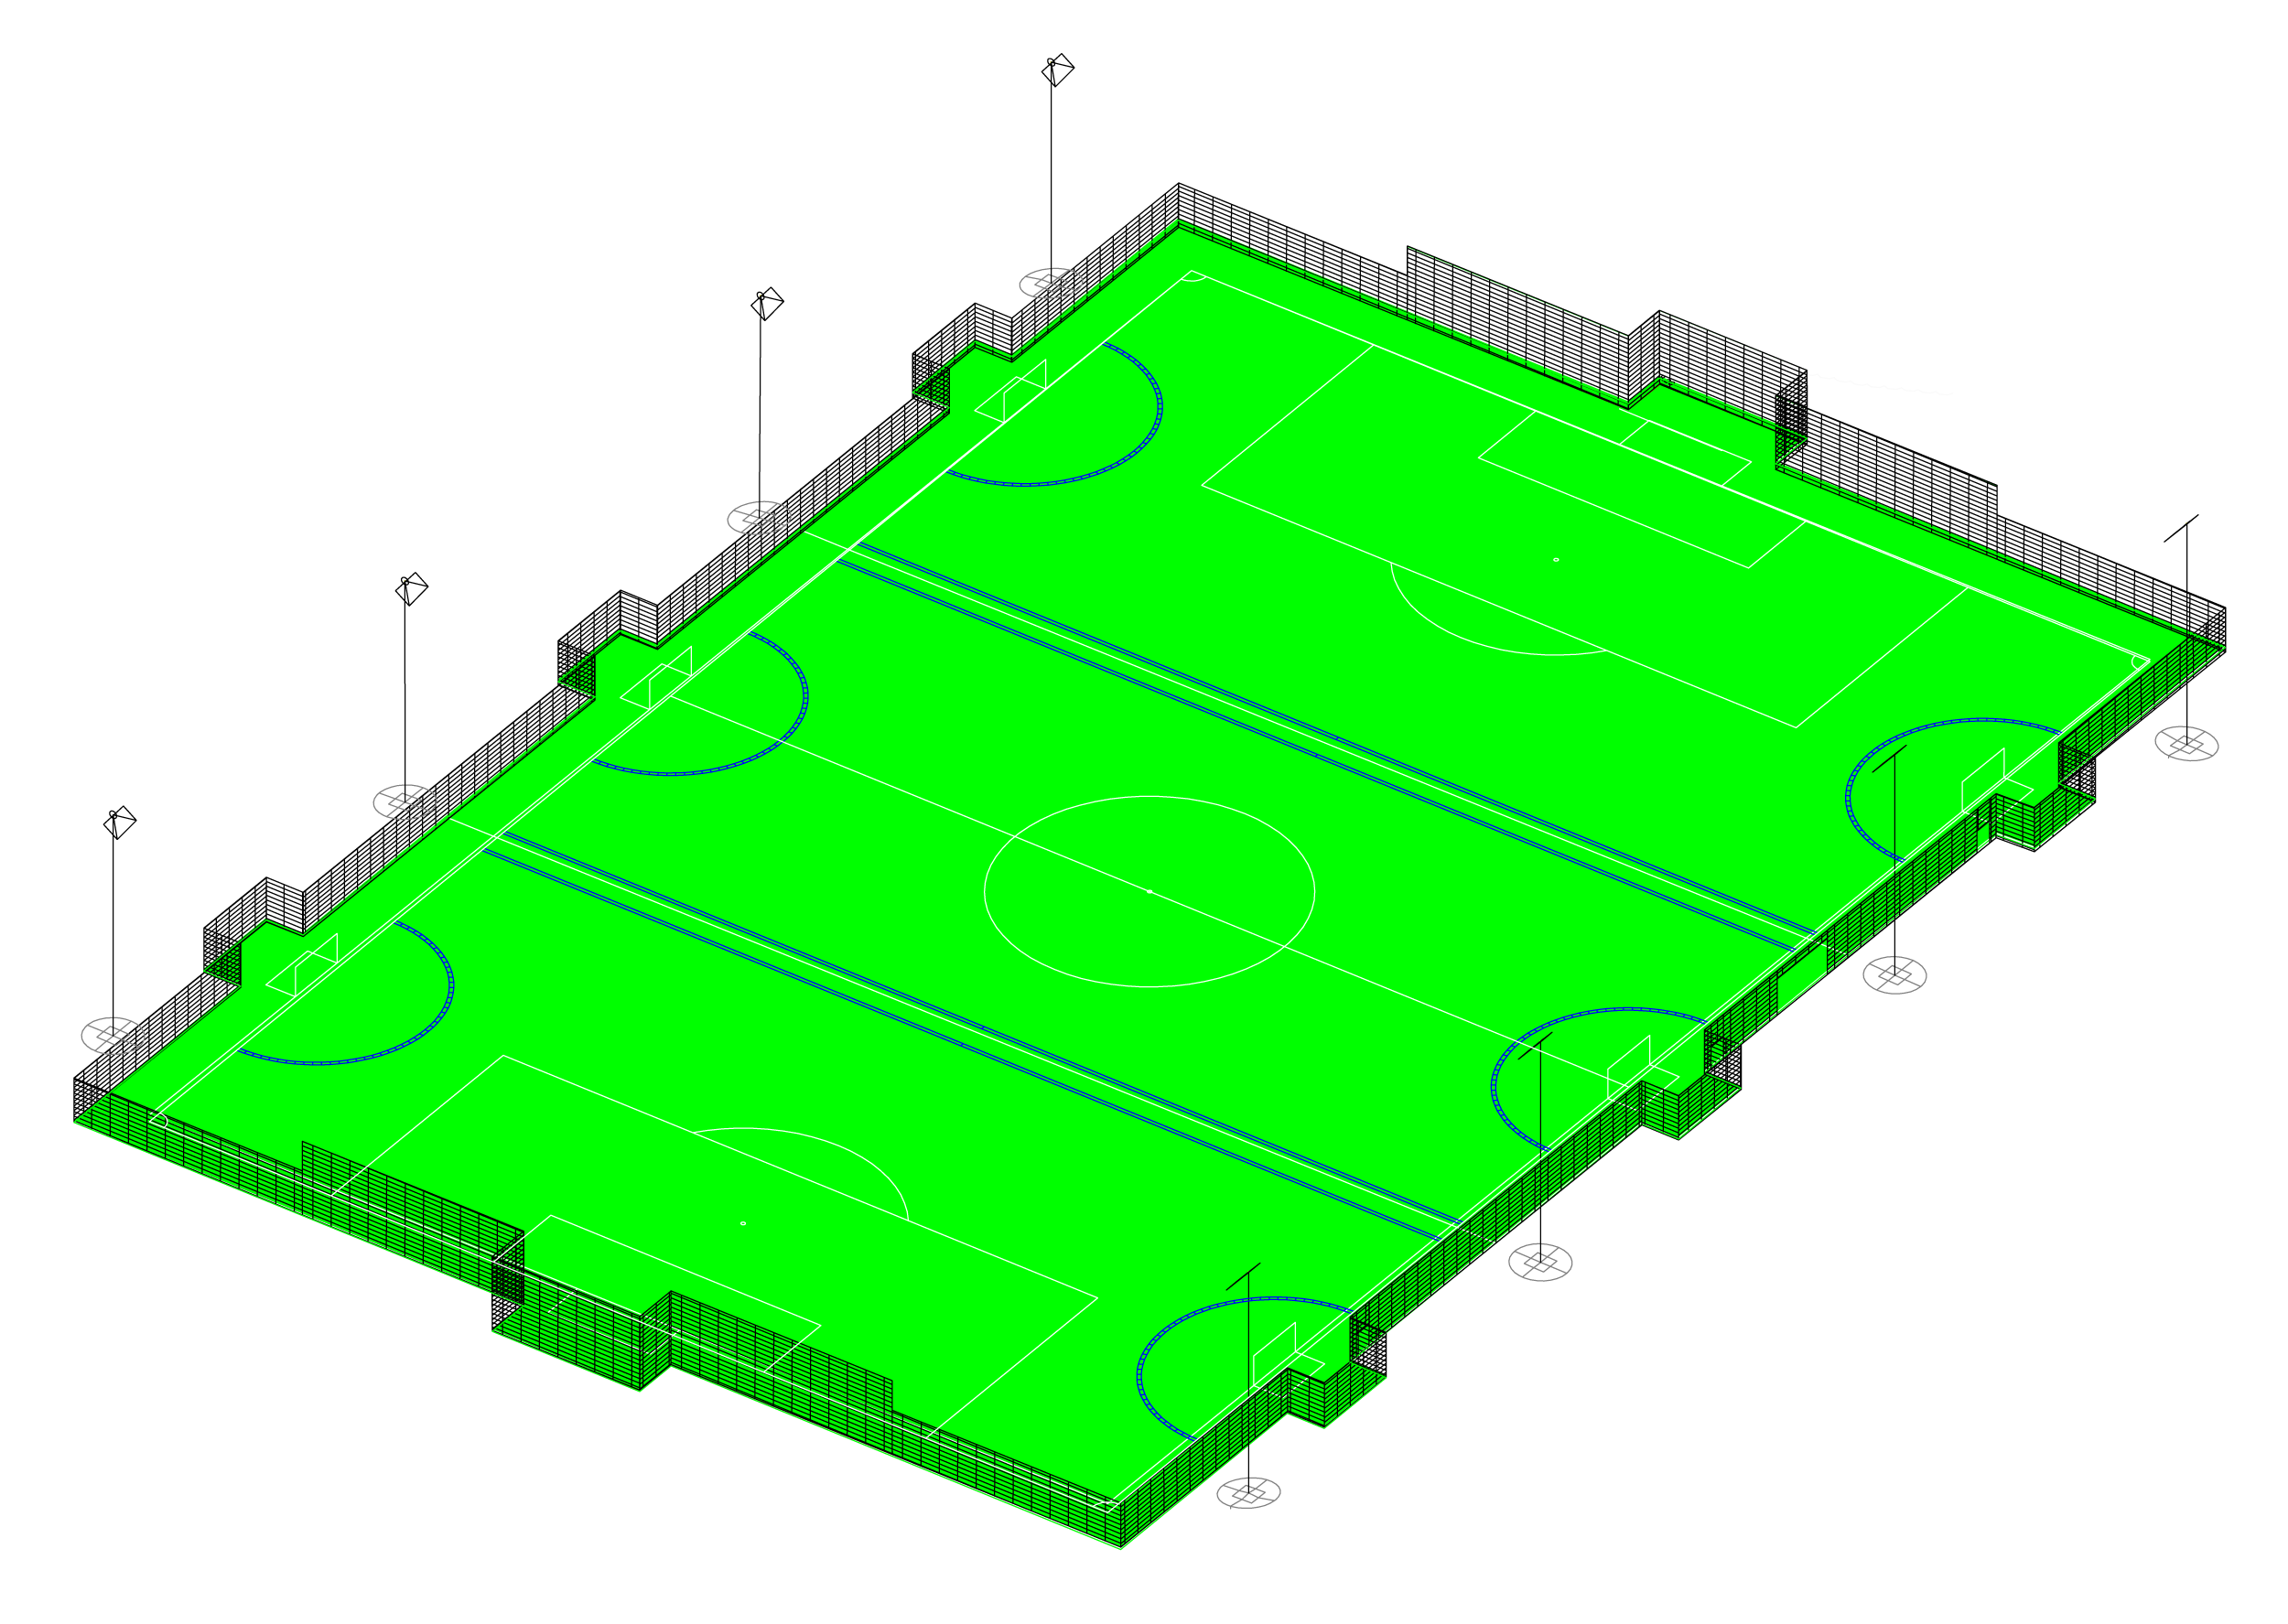 Isometric plan of our Artificial Turf Pitch, showing the markings for three horizontal pitches